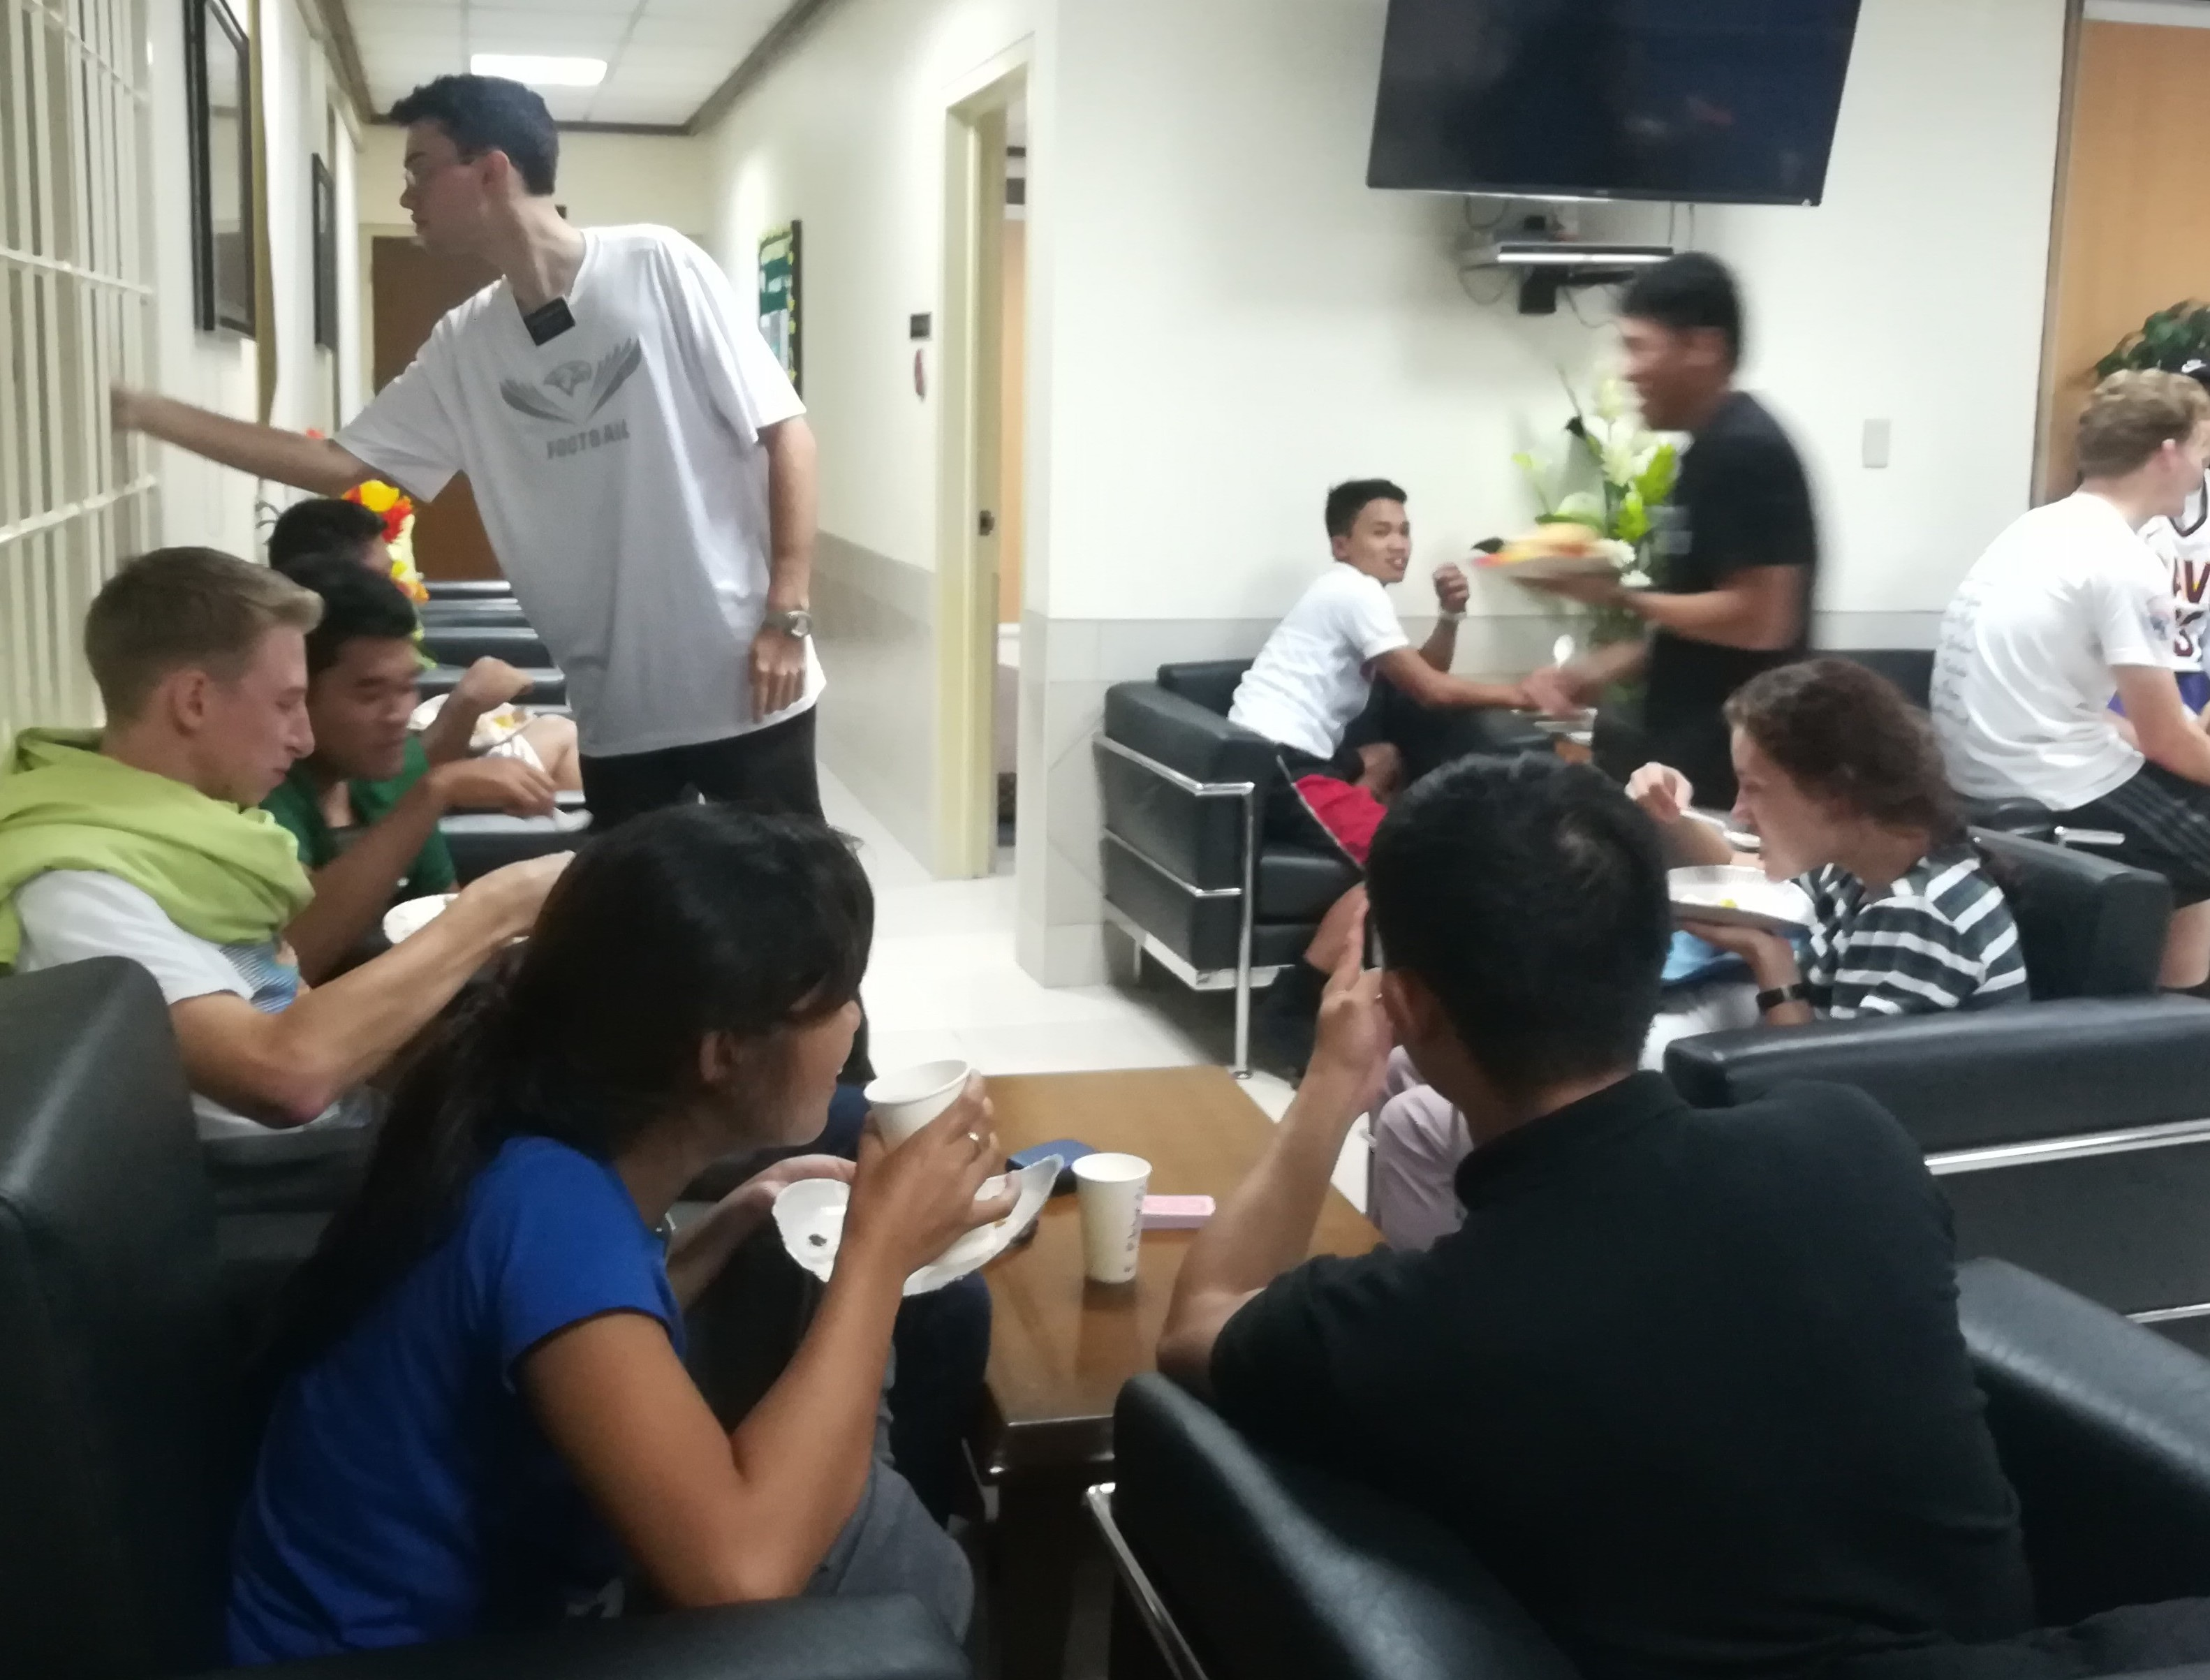 Missionaries in the Philippines enjoy eating and socializing together while sheltered in a meetinghouse during Typhoon Mangkhut.